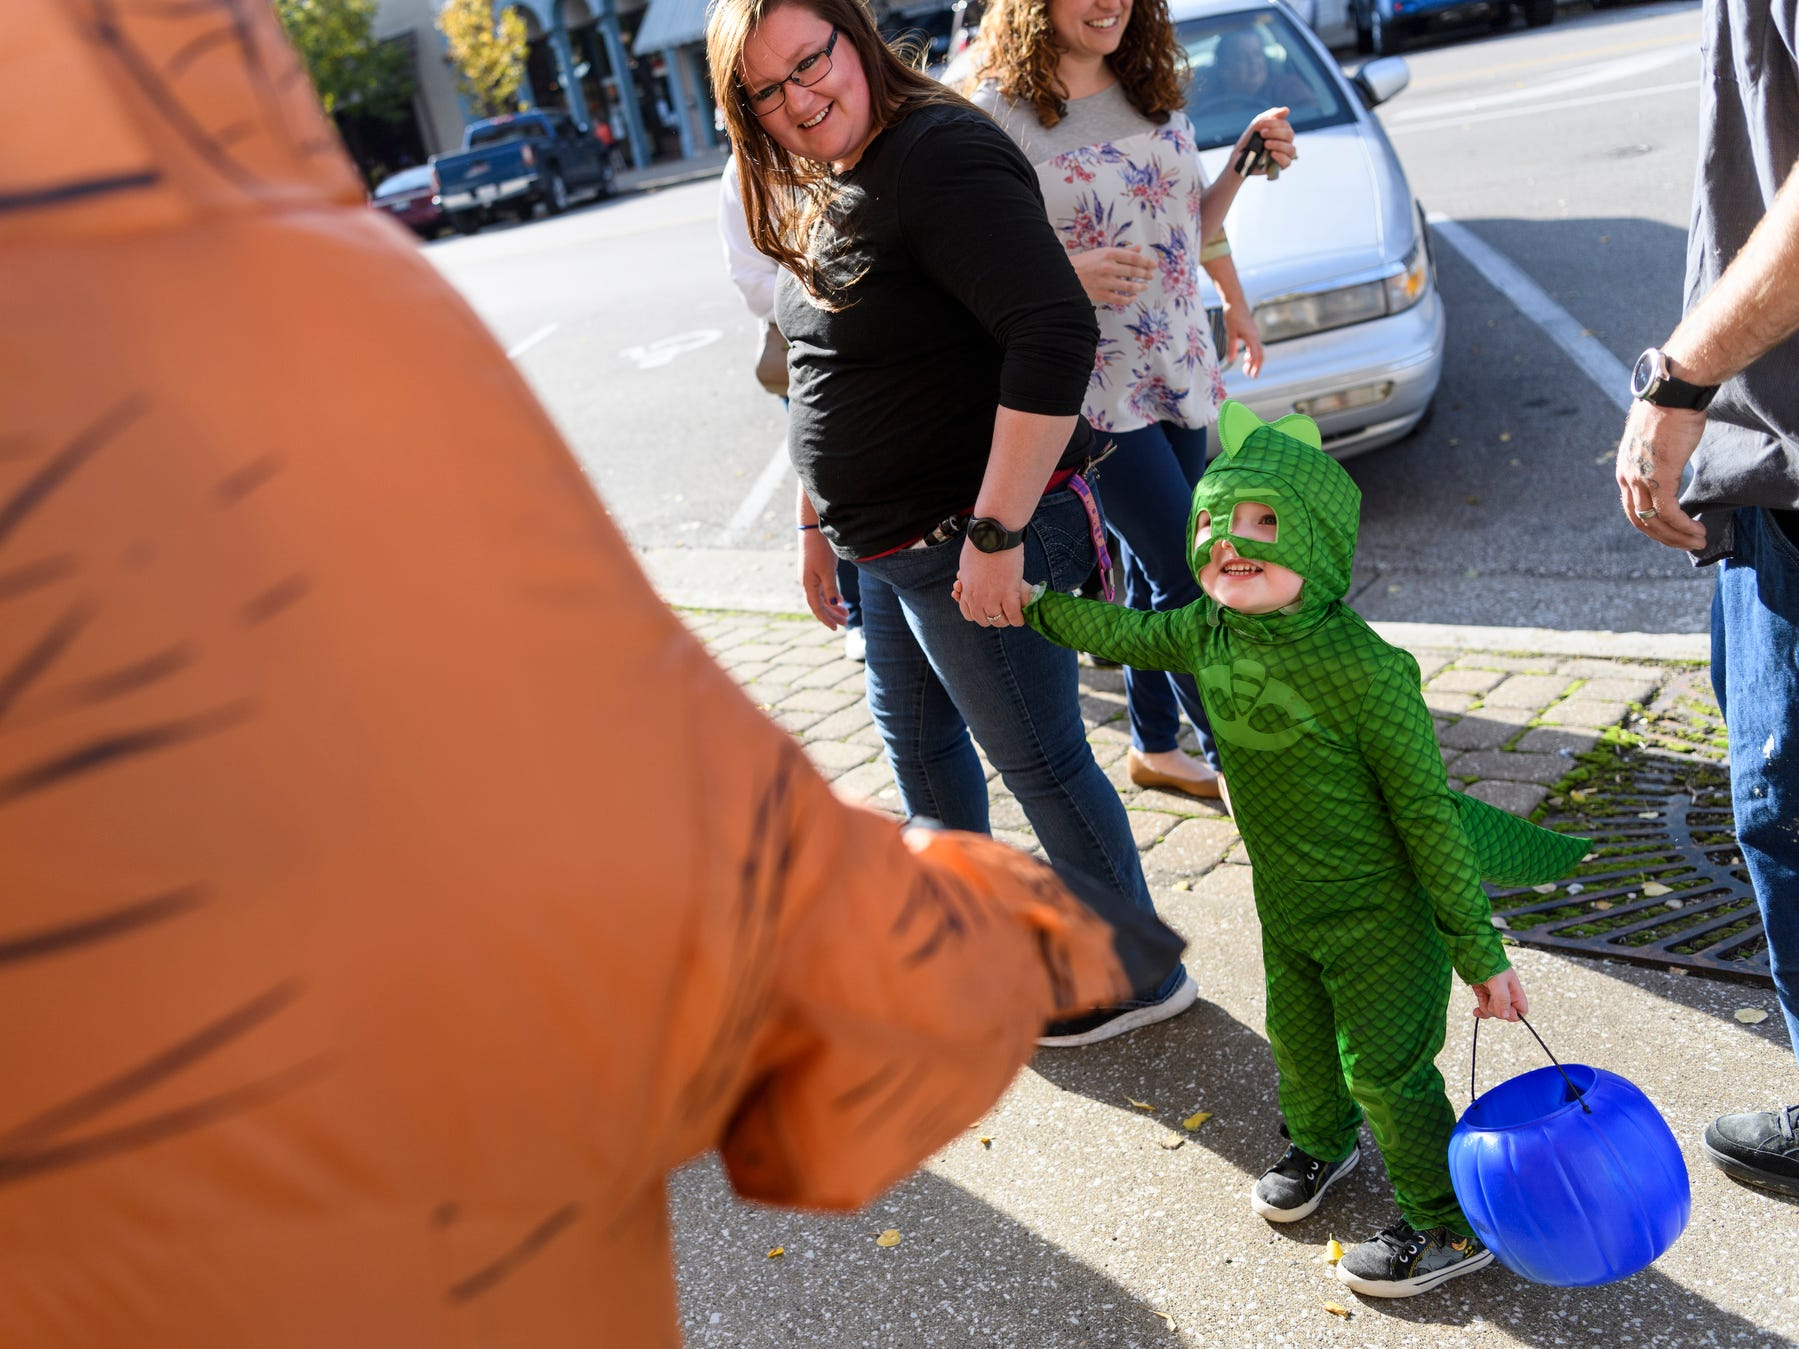 Three-year-old AJ Biggers, right to left, and his mother Samantha Biggers are greeted by Bill Latta of Field and Main Insurance, who is decked out in an inflatable dinosaur suit, along N. Main Street in downtown Henderson, Ky., Tuesday, Oct. 30, 2018. Due to a forecast calling for significant rain on Halloween Day, the Rotaract of Henderson moved it's Downtown Trick-Or-Treat event to Tuesday evening from 3-5 p.m.